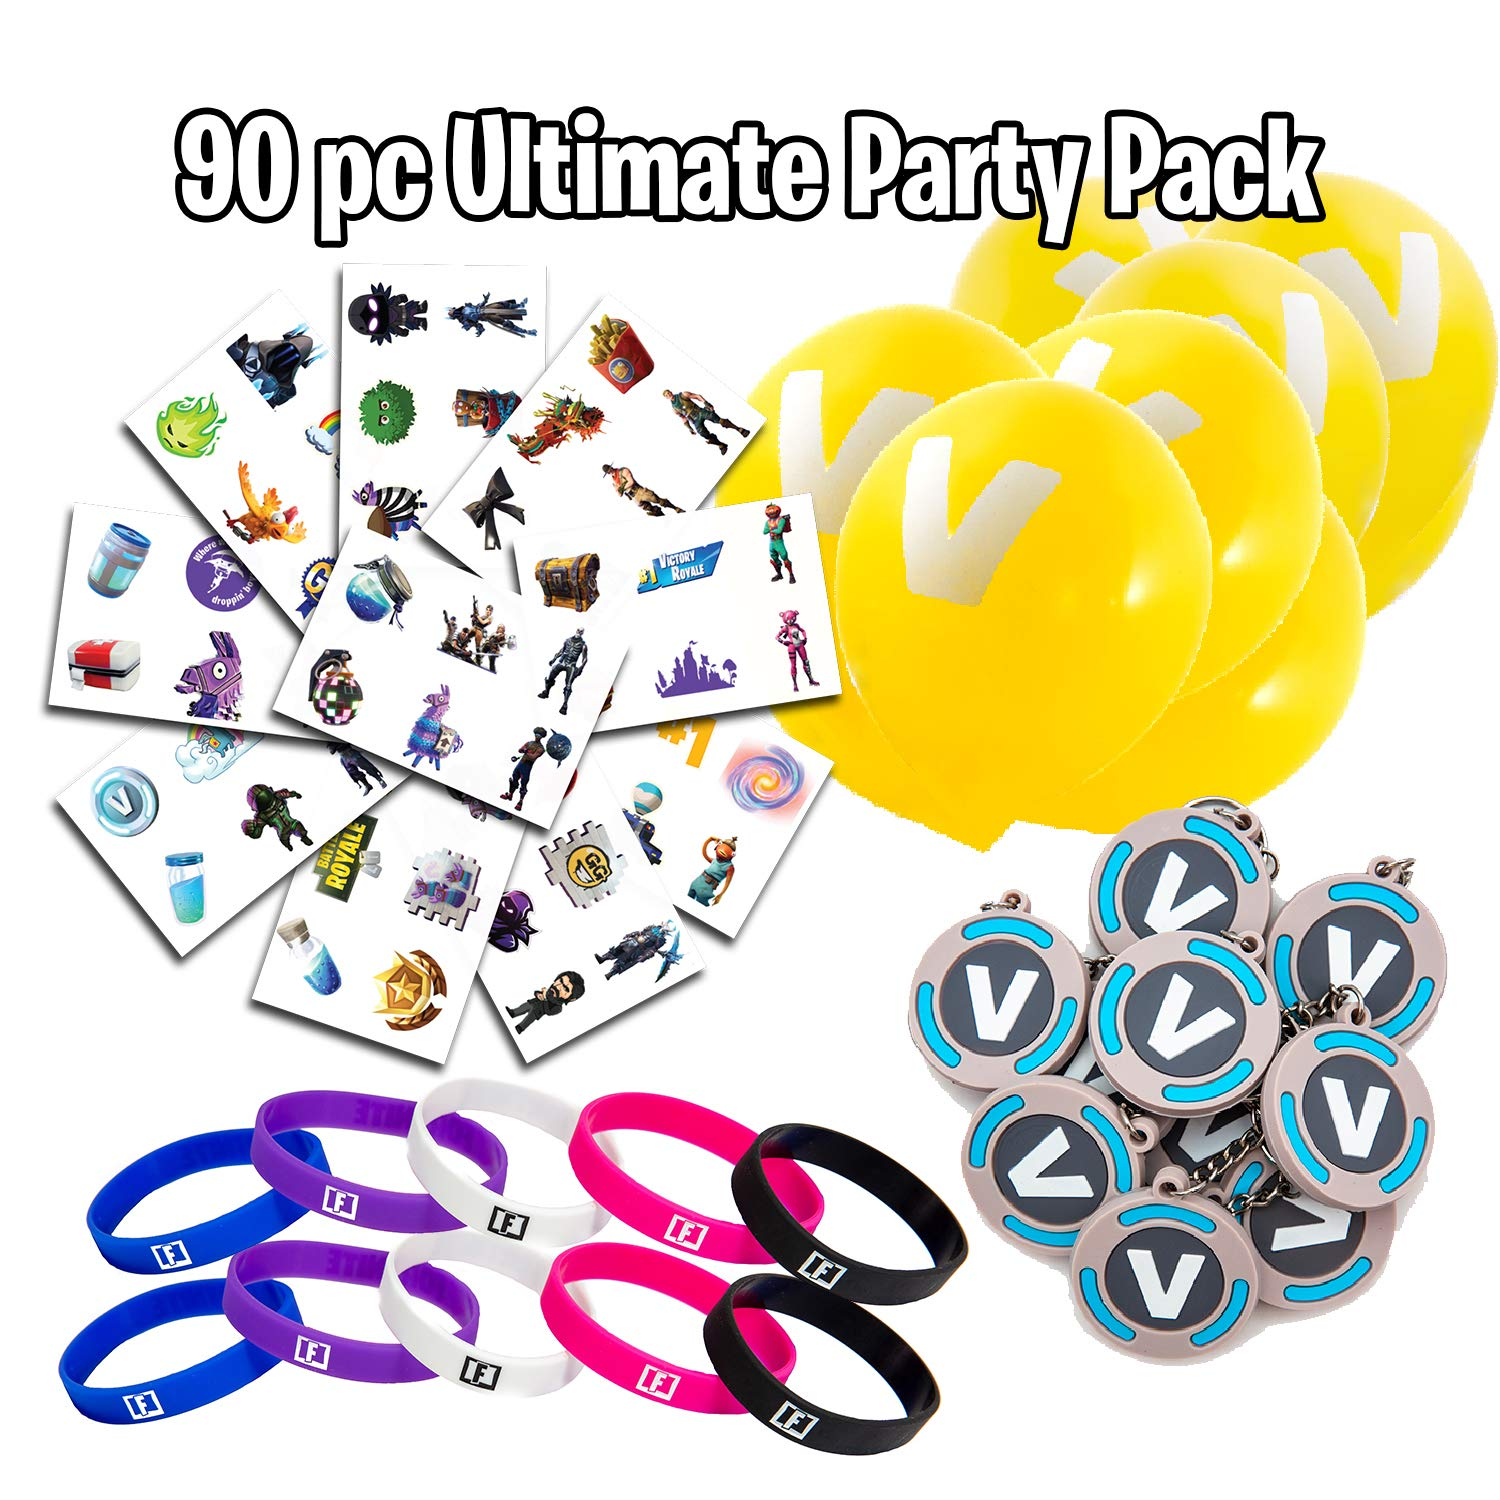 Video Game Party Supplies – Battle Royale Party Favor Set – Includes Tattoo Sheets, Balloons, Silicone Bands, V Key Chains – Ideal for Kids' Birthday Parties, Sleepovers